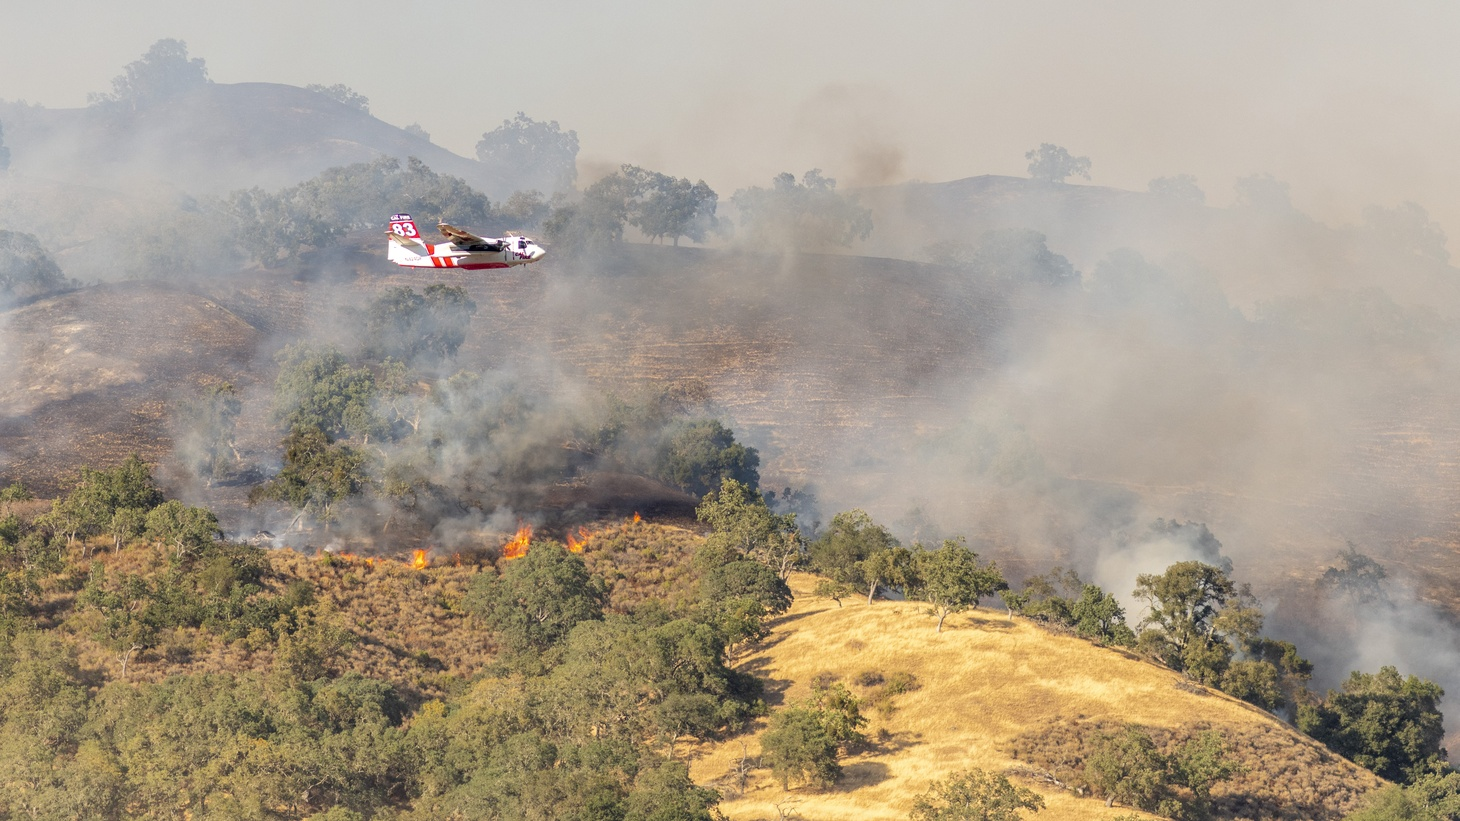 In an effort to control the spread of wildfire, a Cal Fire aircraft is spraying fire retardant on a hill in Santa Clara County, California, United States on August 20, 2020. Multiple large lightnings on Sunday, August 16, 2020, have caused fires burning in the mountains near Santa Clara and San Jose.